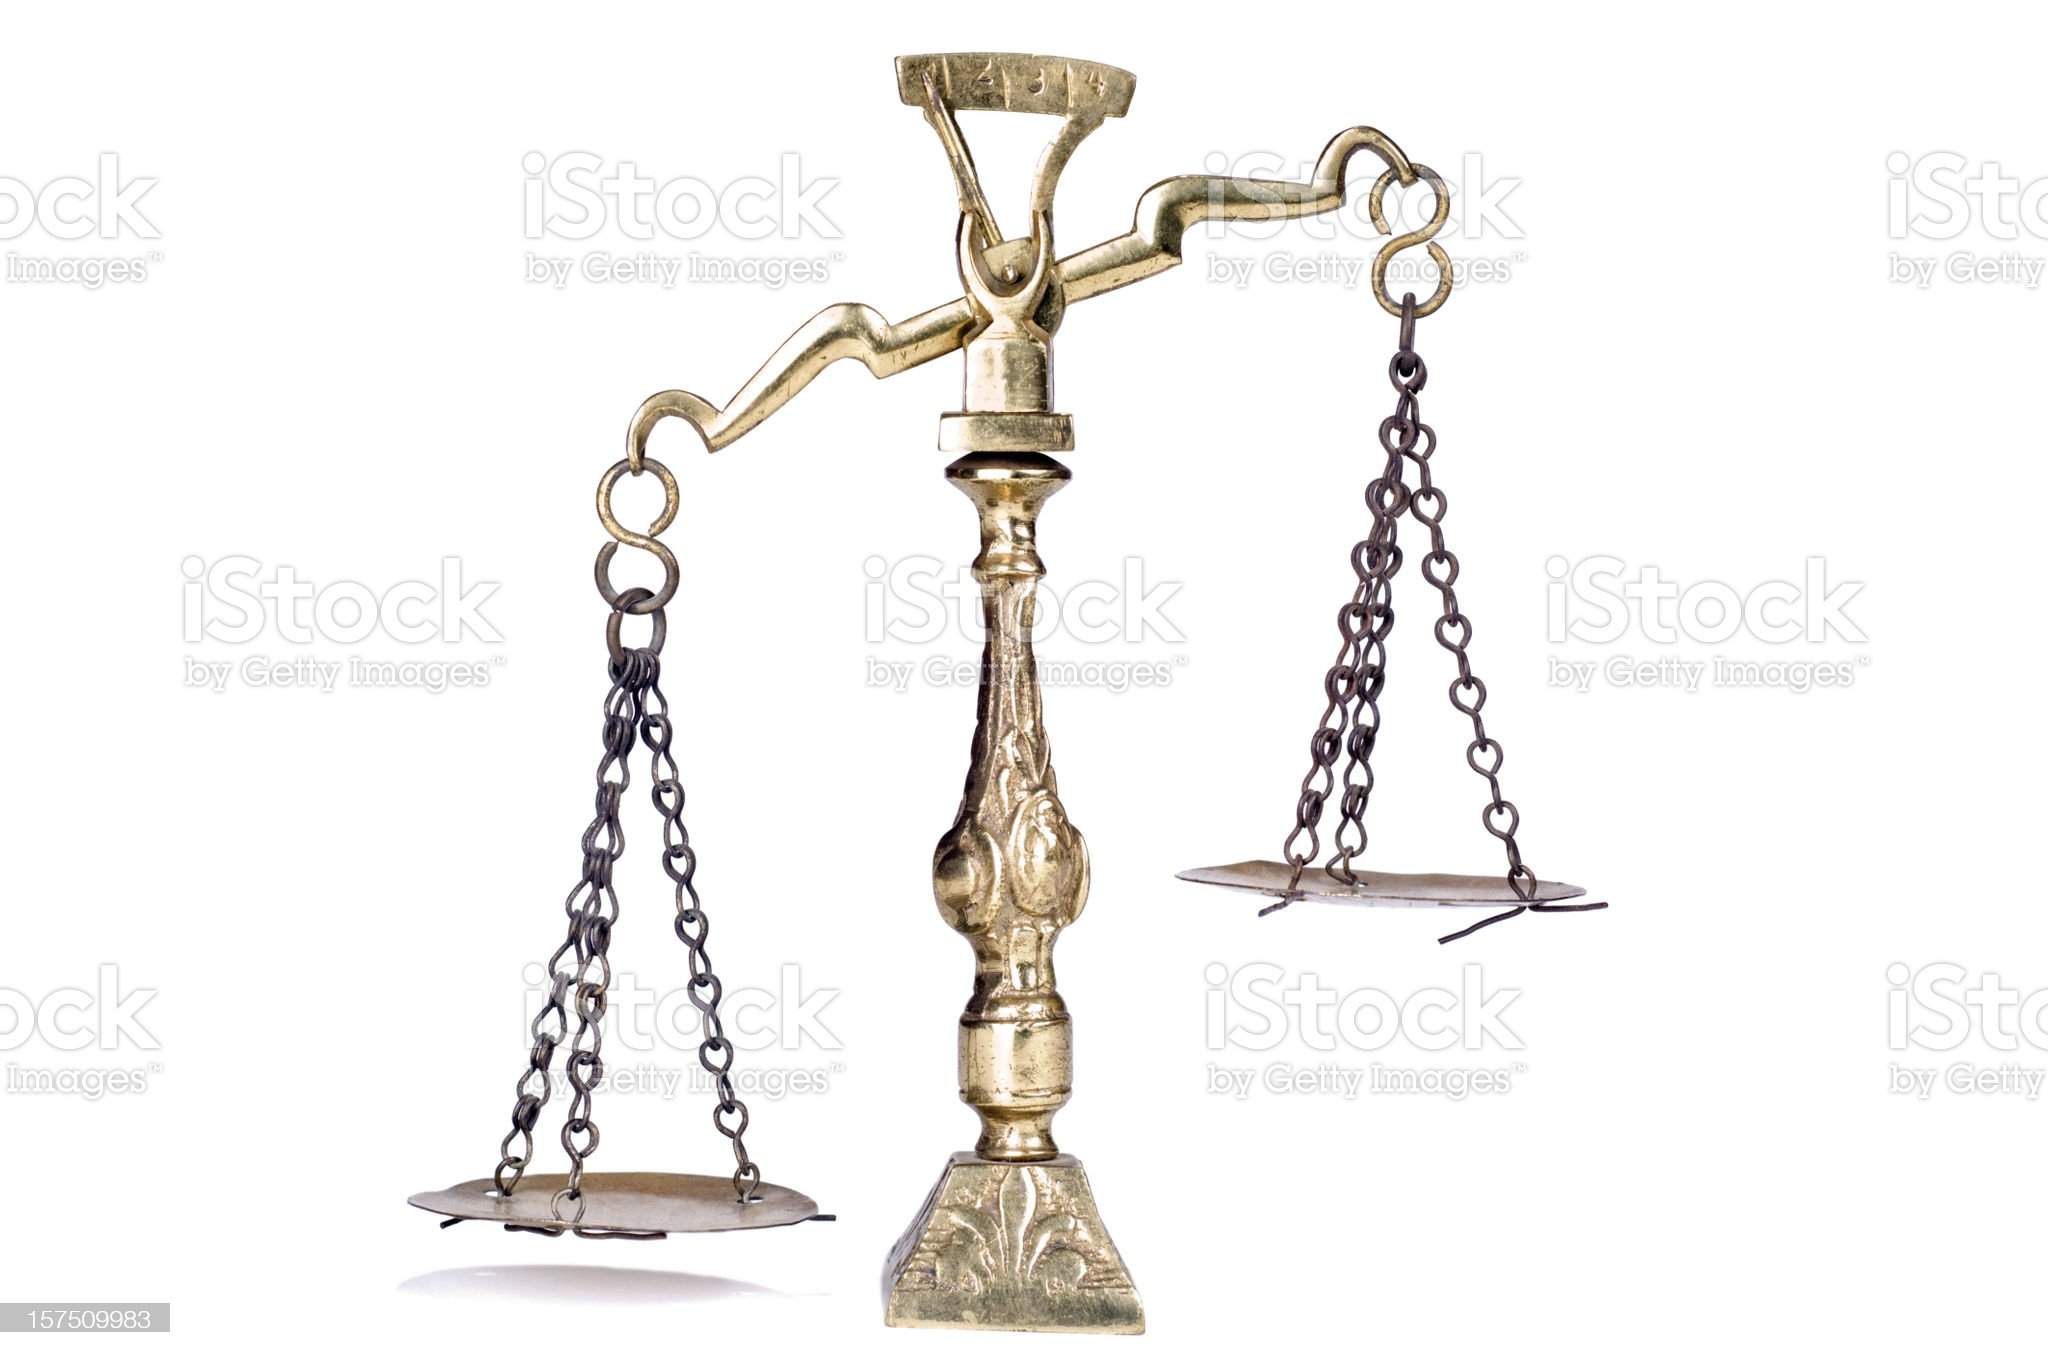 Scales royalty-free stock photo